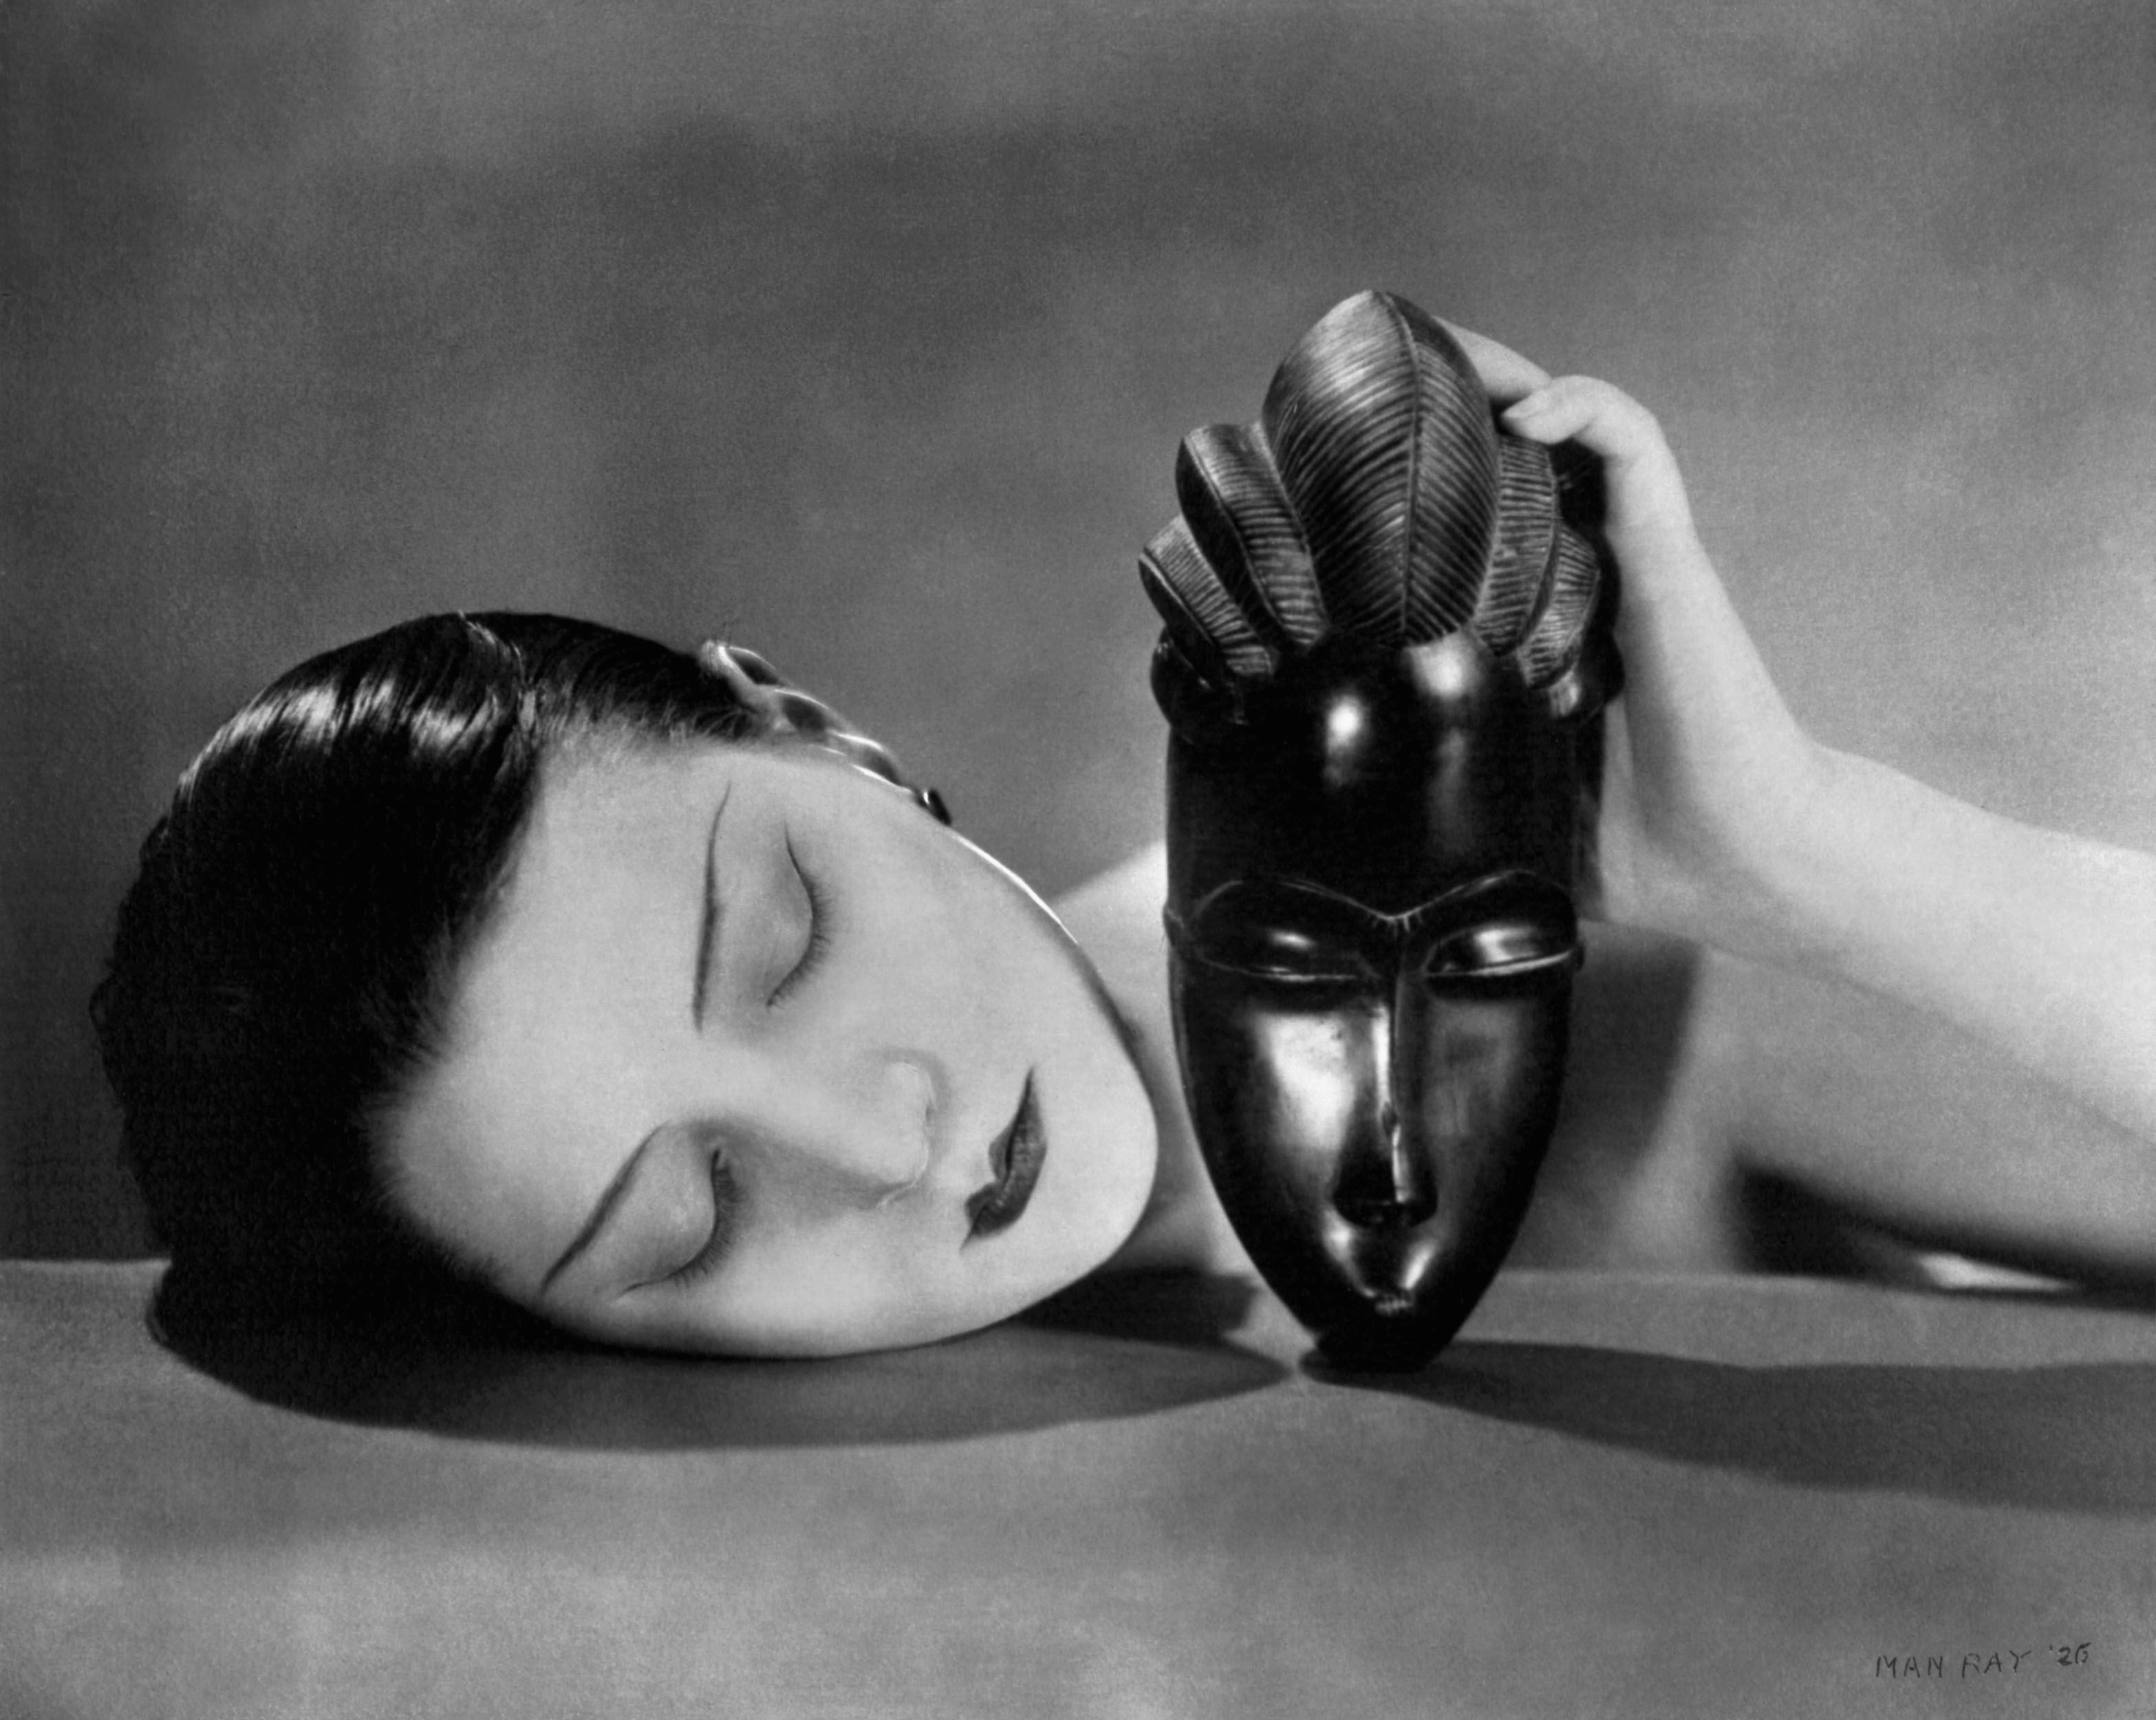 Резултат с изображение за Man Ray art